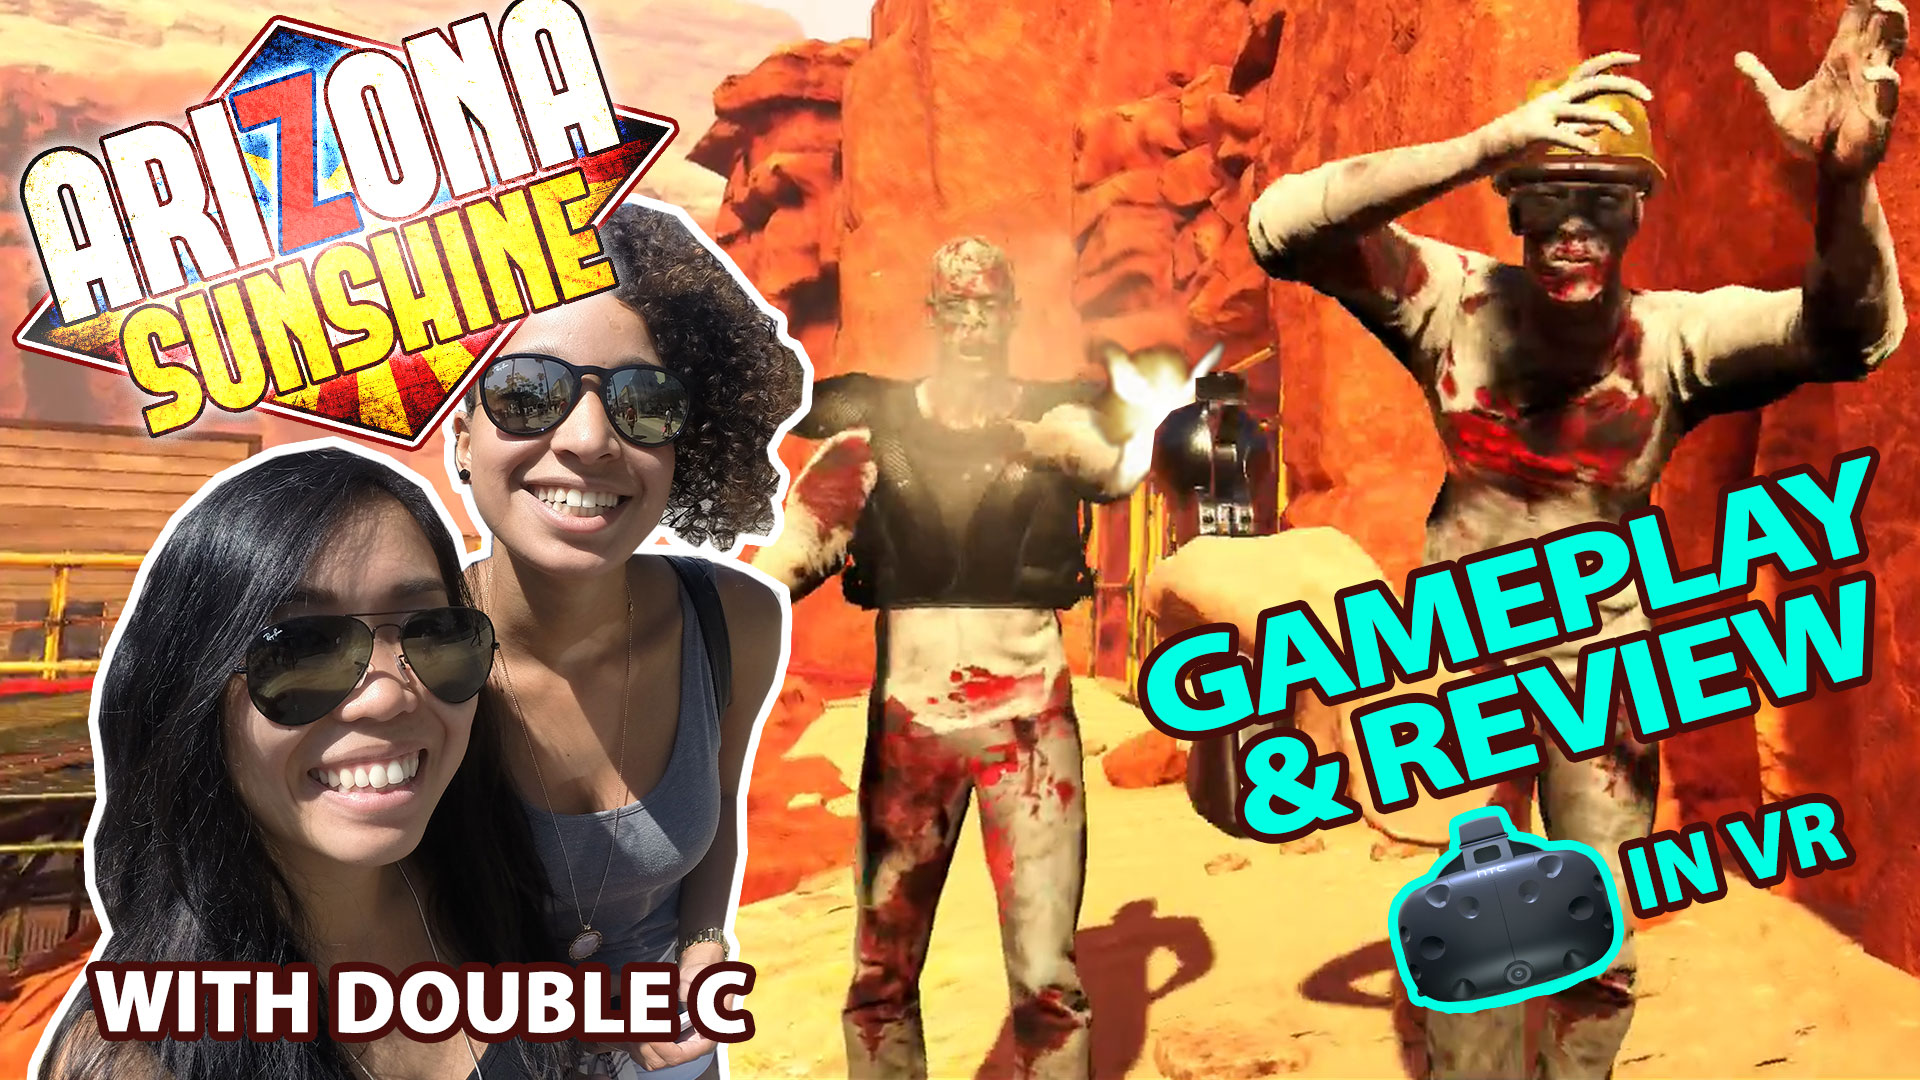 Zombies in Virtual Reality | Arizona Sunshine VR Review (HTC Vive Gameplay)